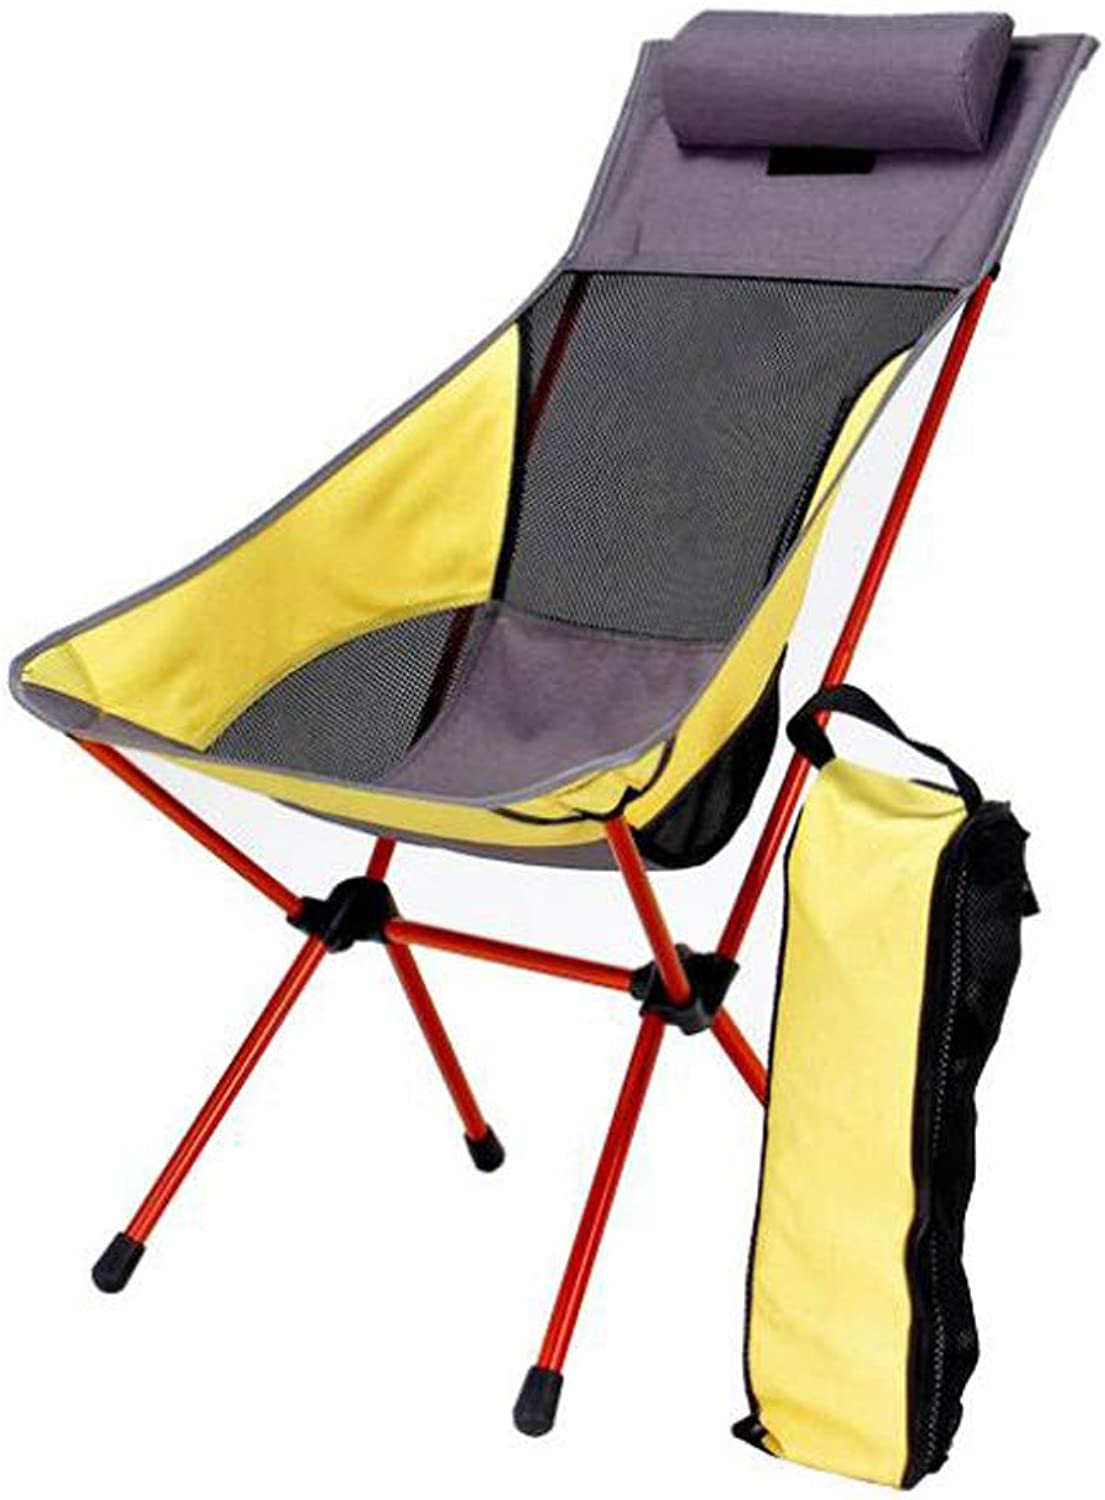 Folding Chair with Pillow Outdoor Moon Chair Leisure Ultra Light Portable Thick Aluminum Alloy High Back Camping Chair